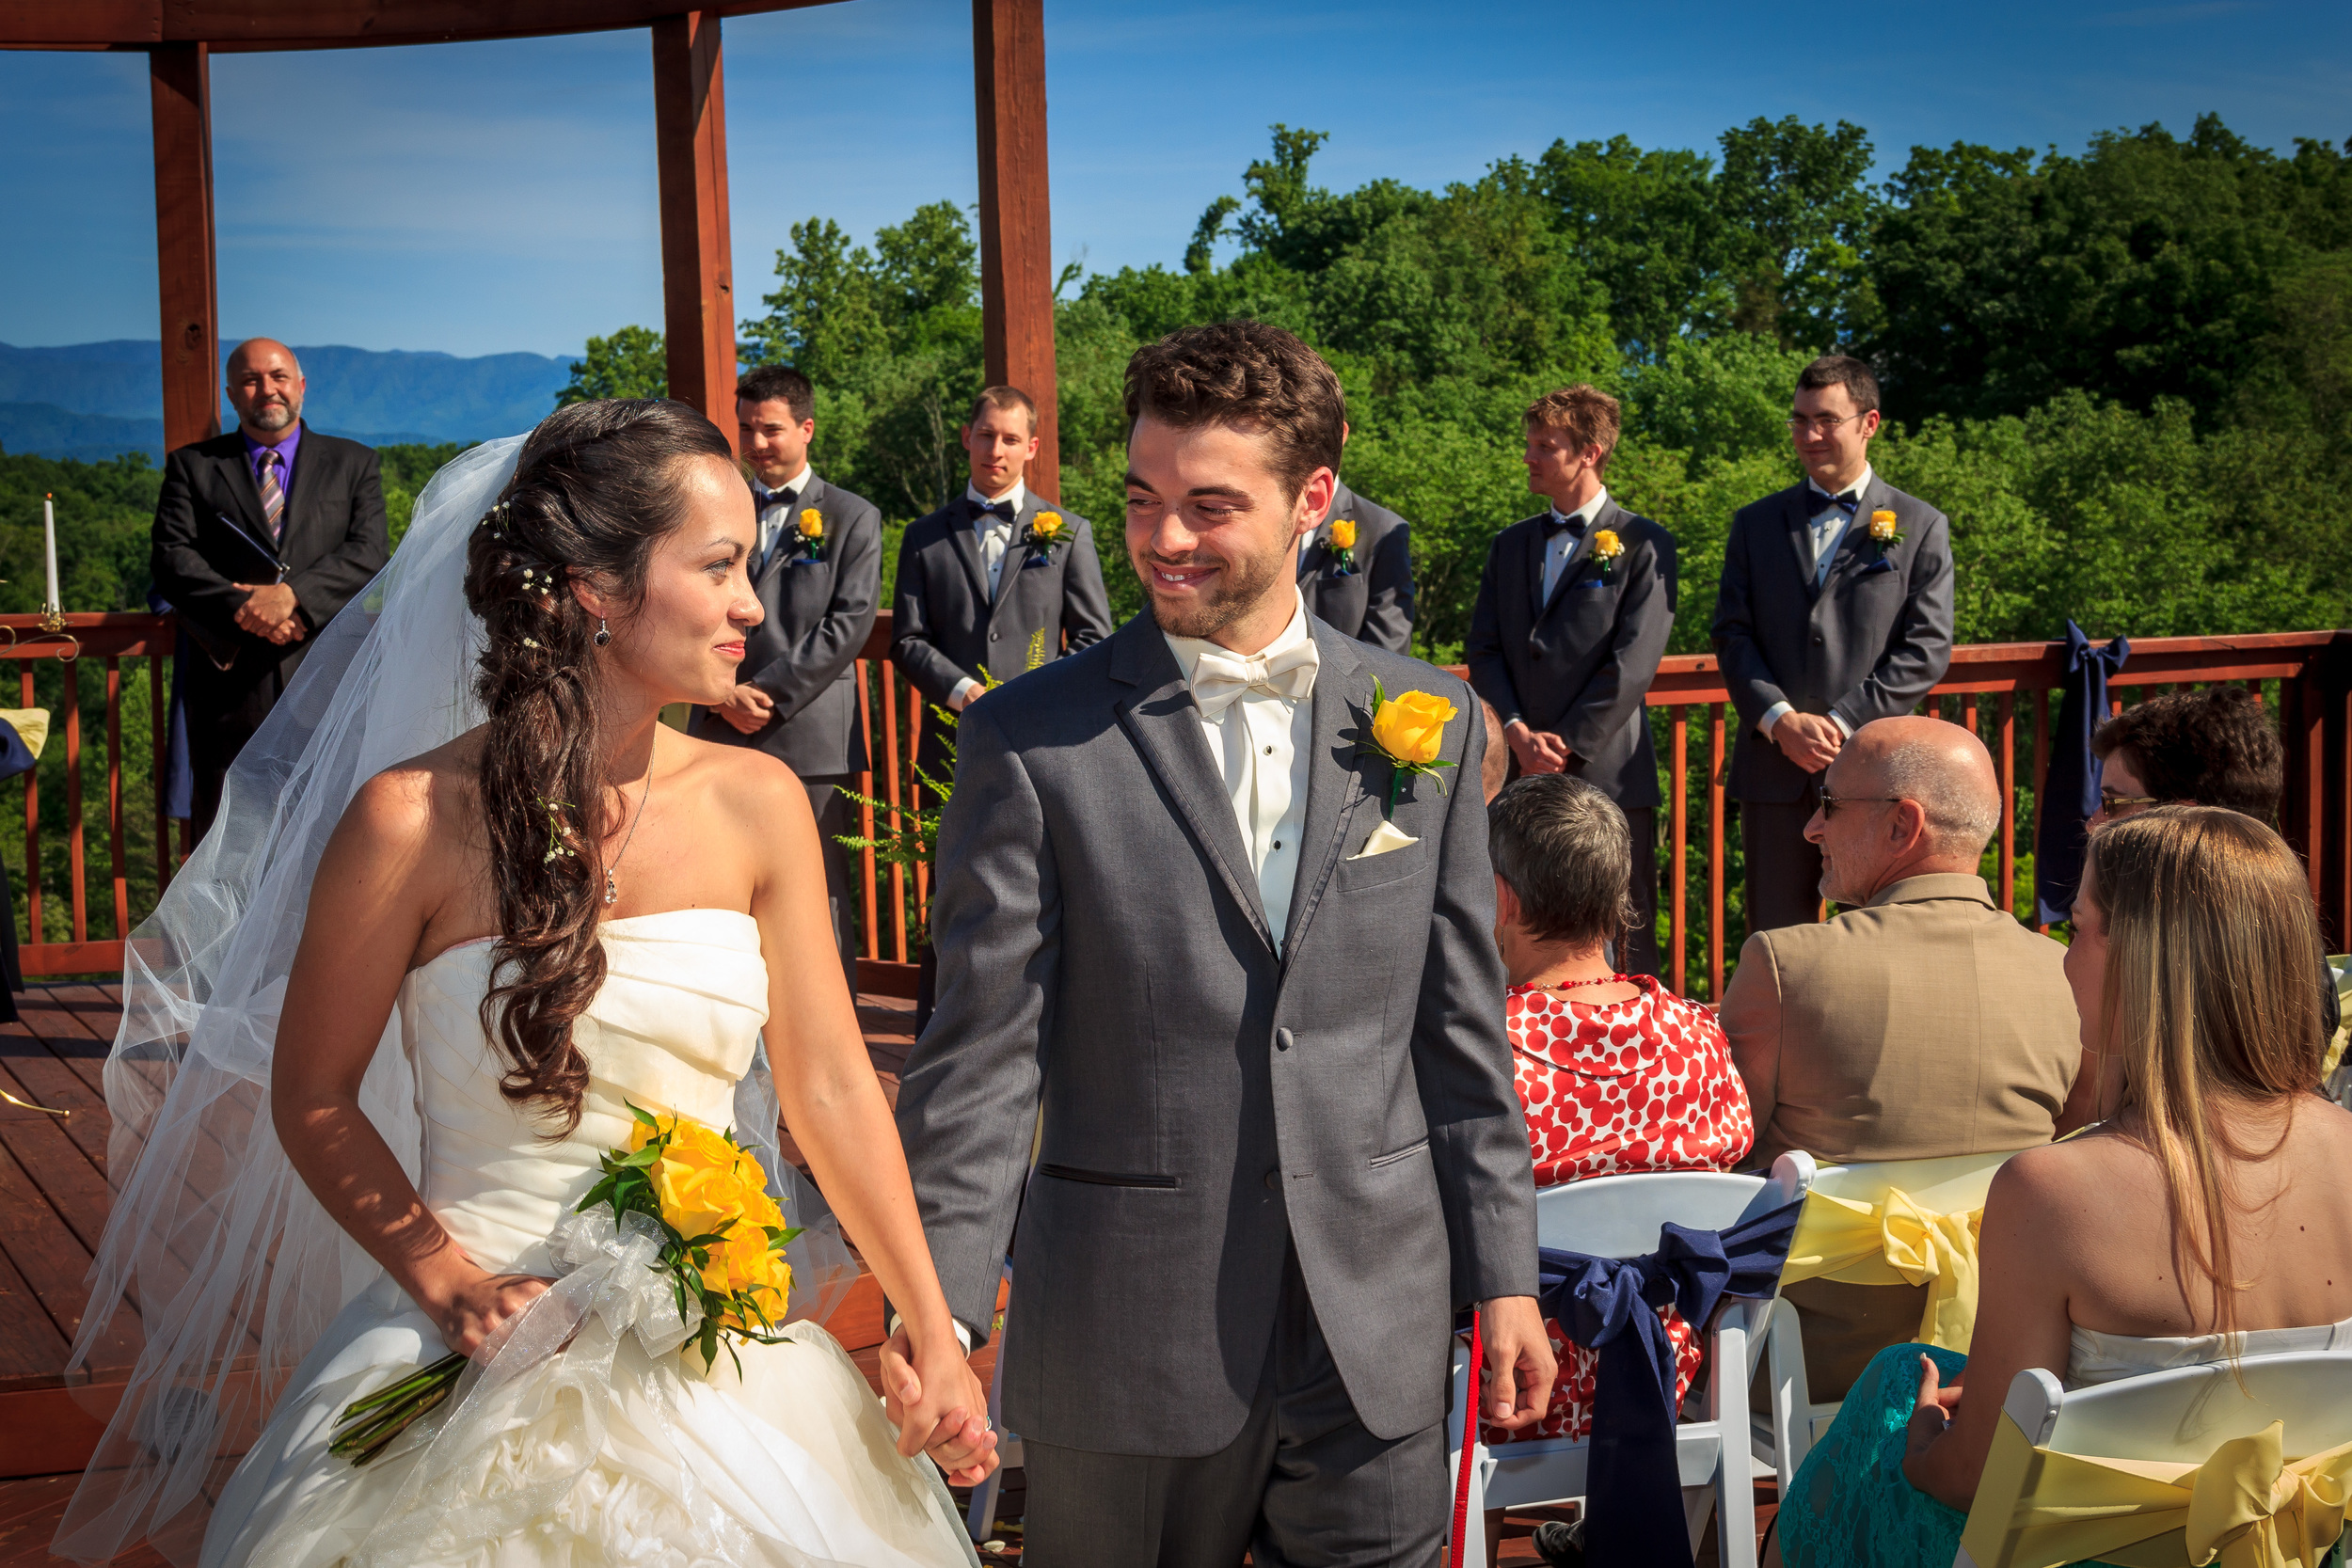 smoky-mountain-wedding-ceremony.jpg